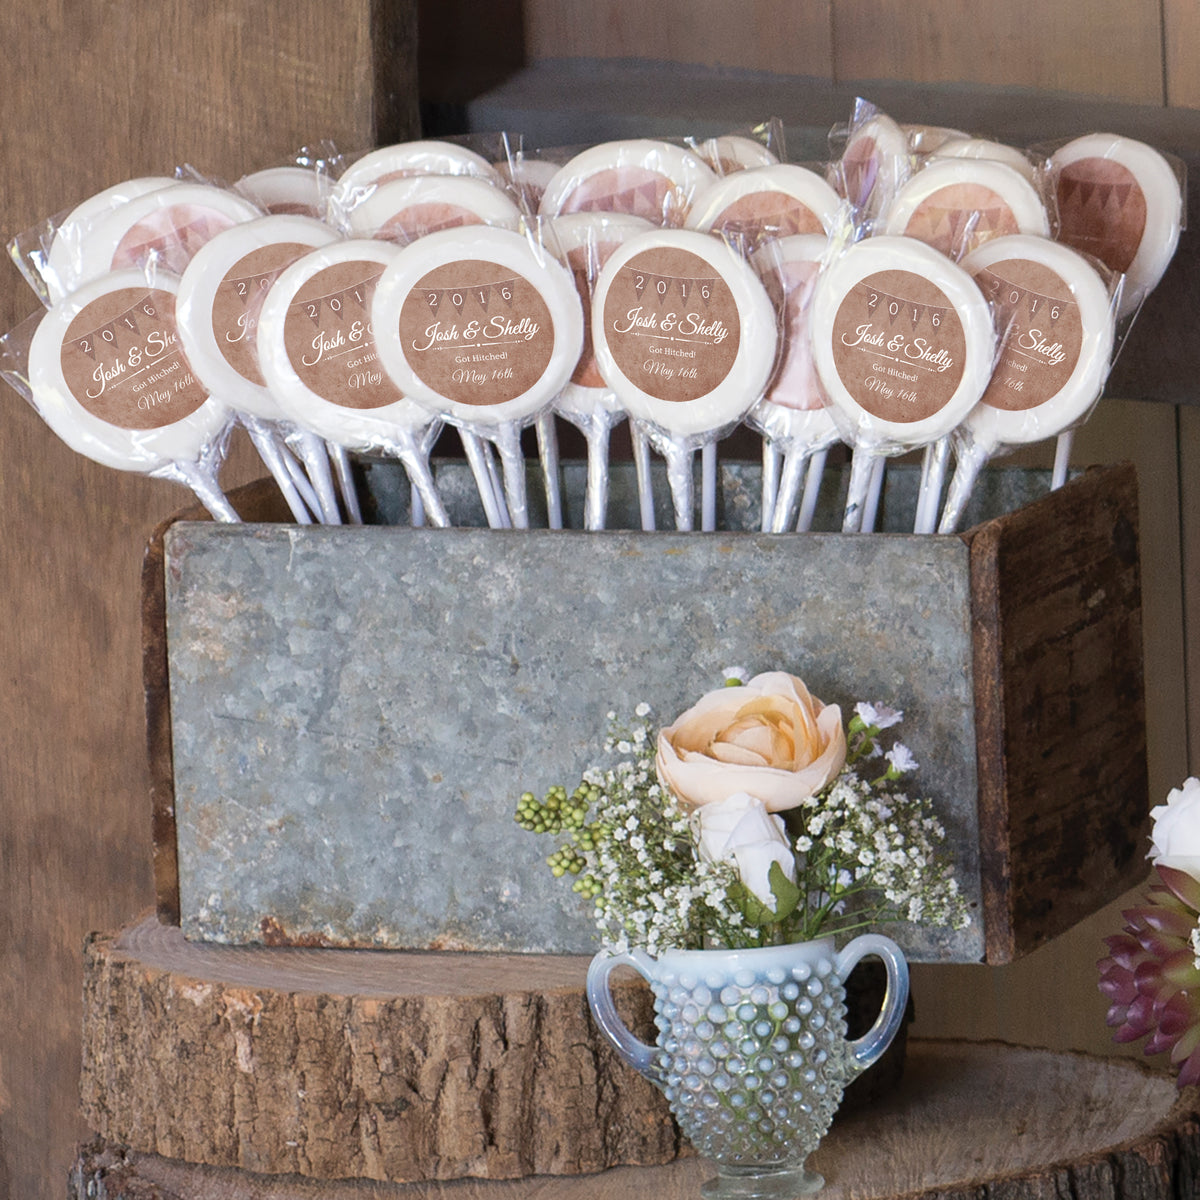 Tropical Chic Personalized White Swirl Lollipops